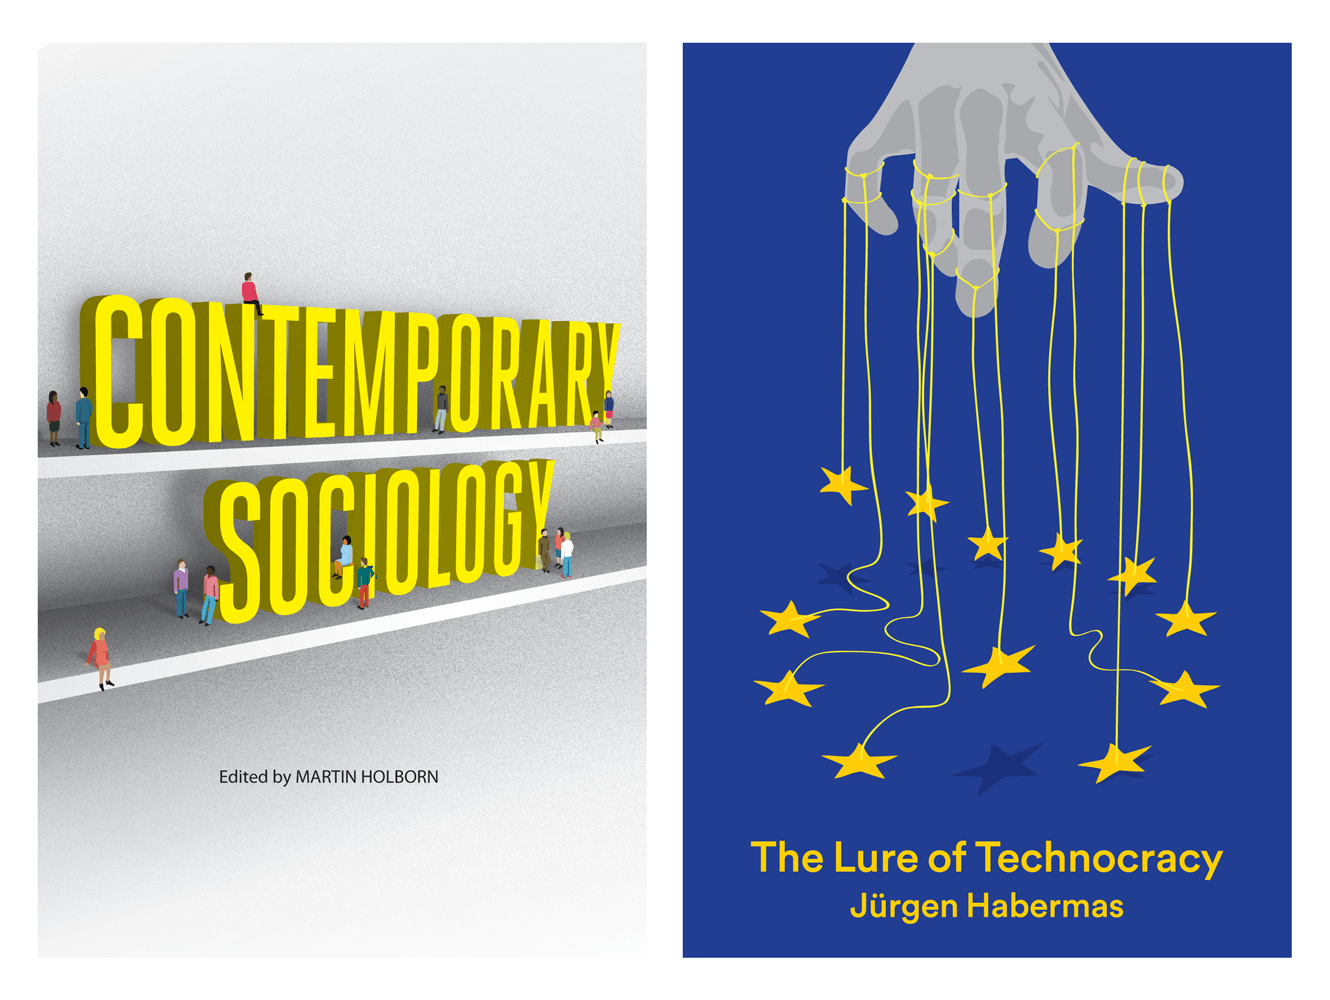 Book Cover Design For Contemporary Sociology And The Lure Of Technocracy By Polity Books. Designed By &&& Creative